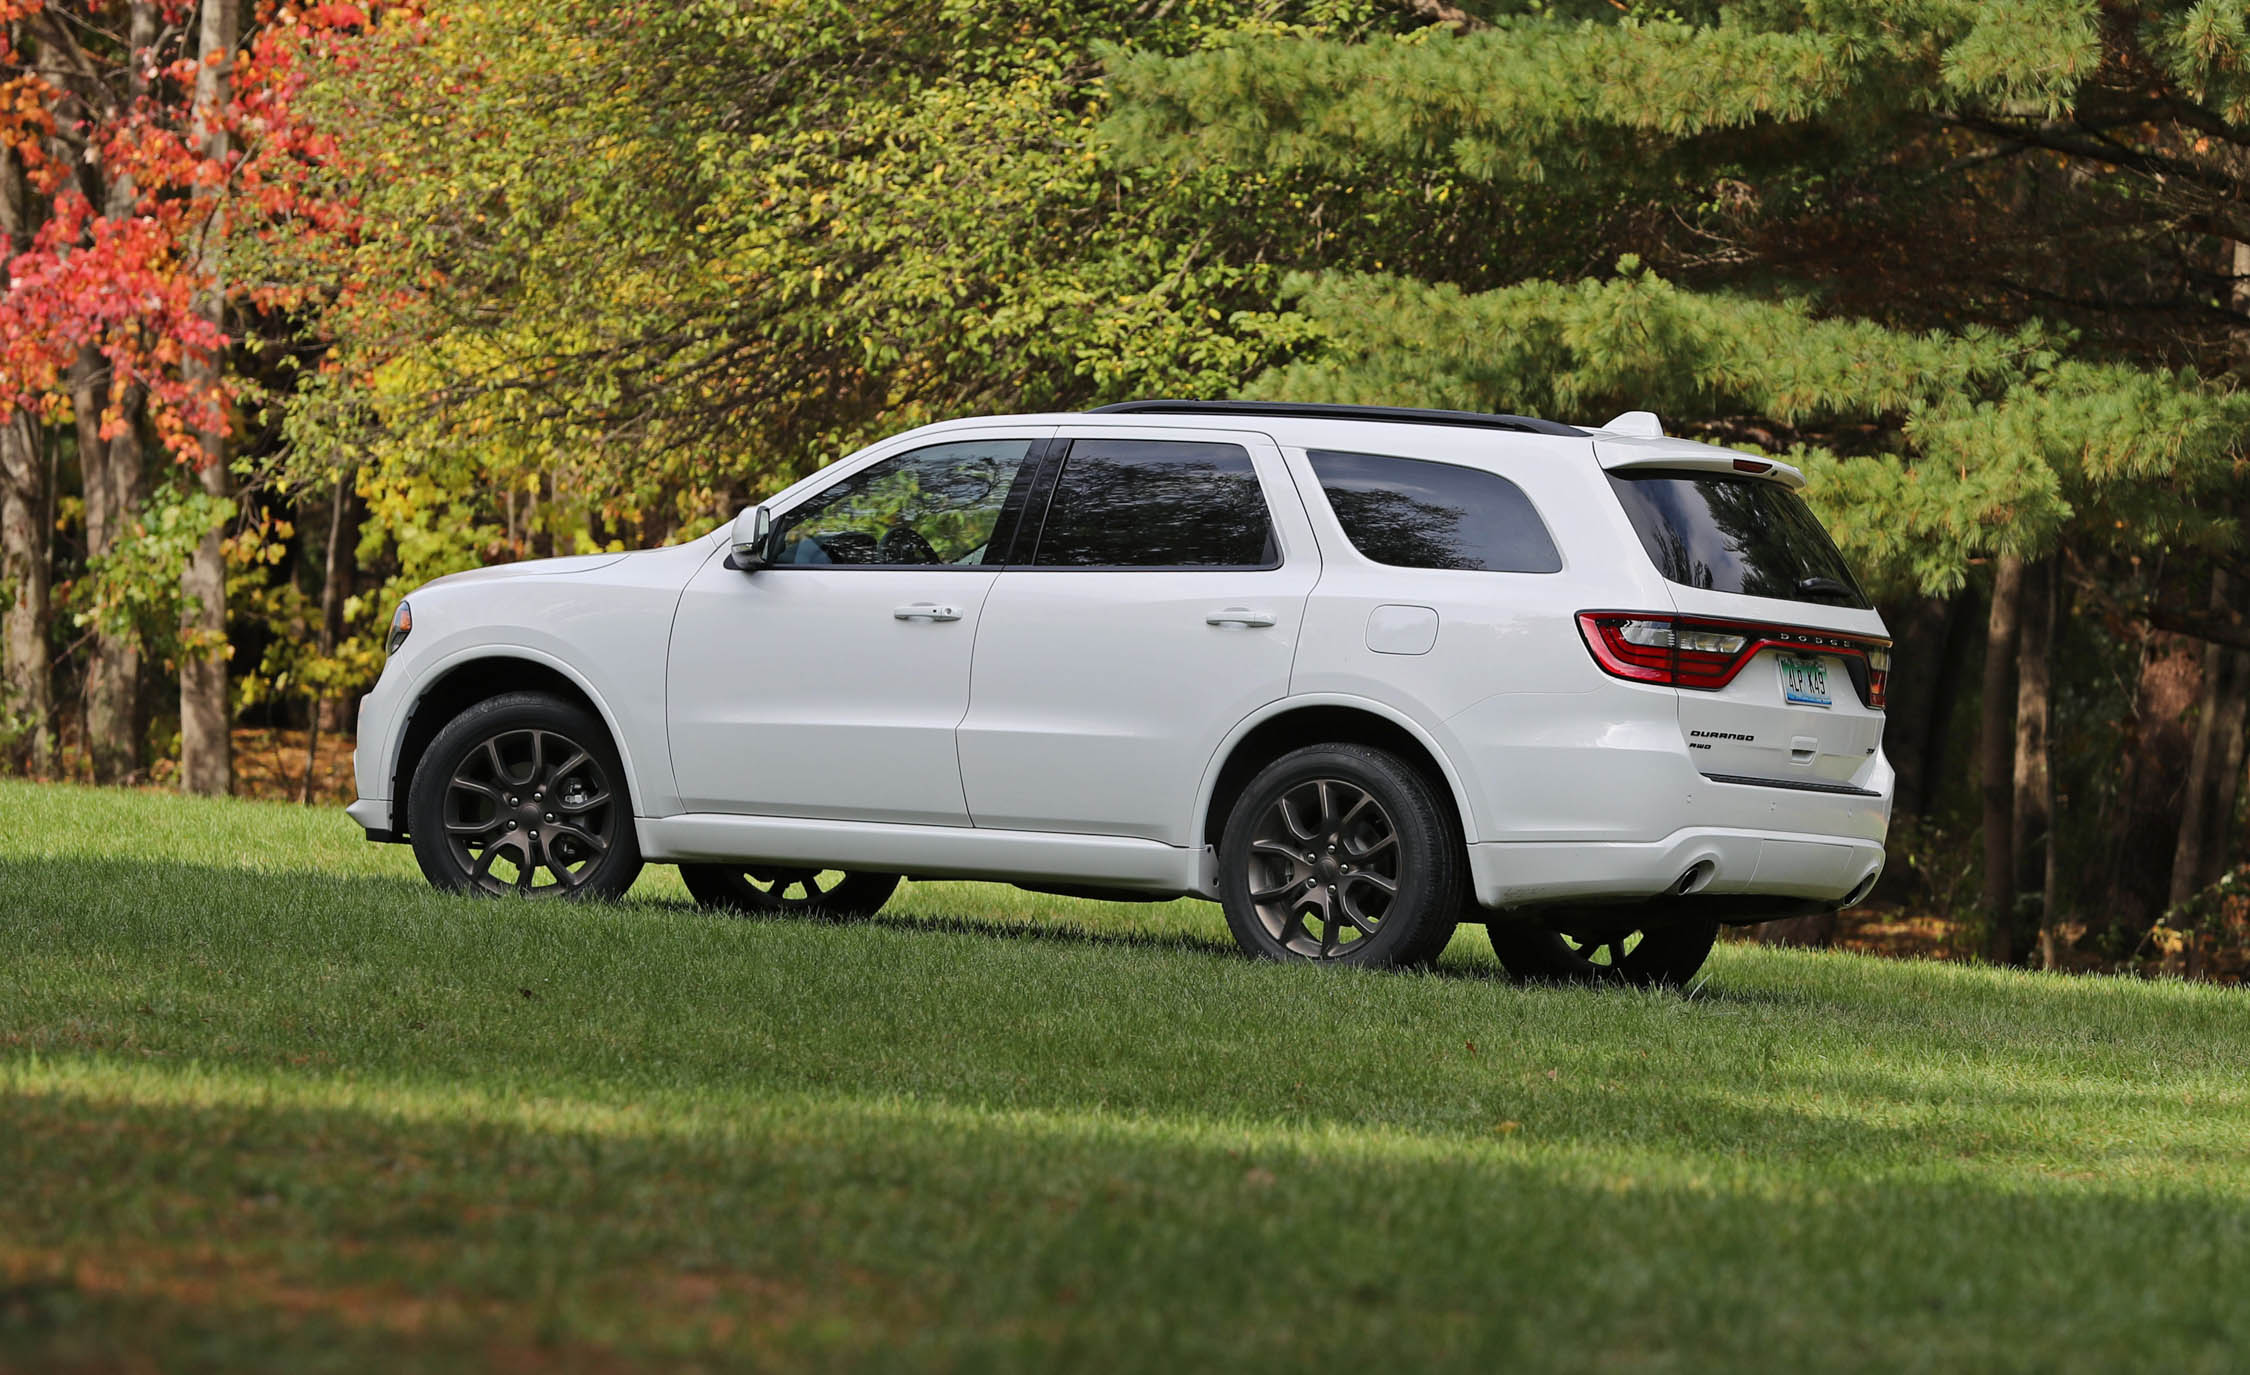 2017 Dodge Durango GT AWD (Photo 4 of 12)